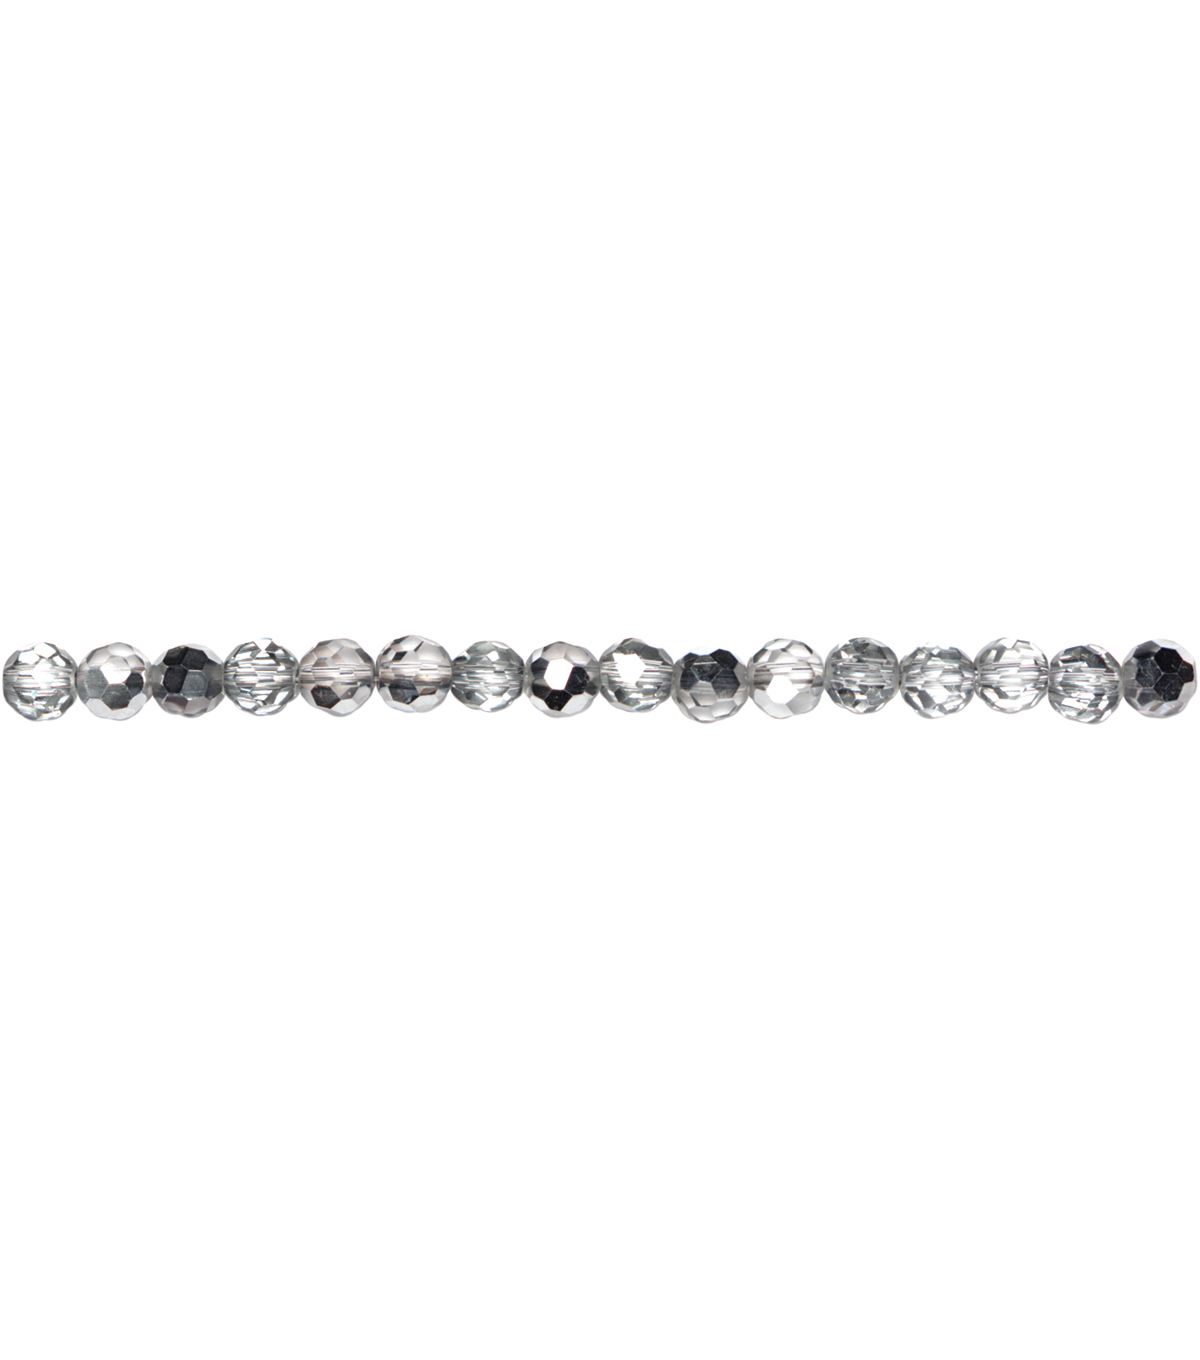 Jewelry Basics Glass Beads 6mm 48/Pkg-Silver Mirror Round